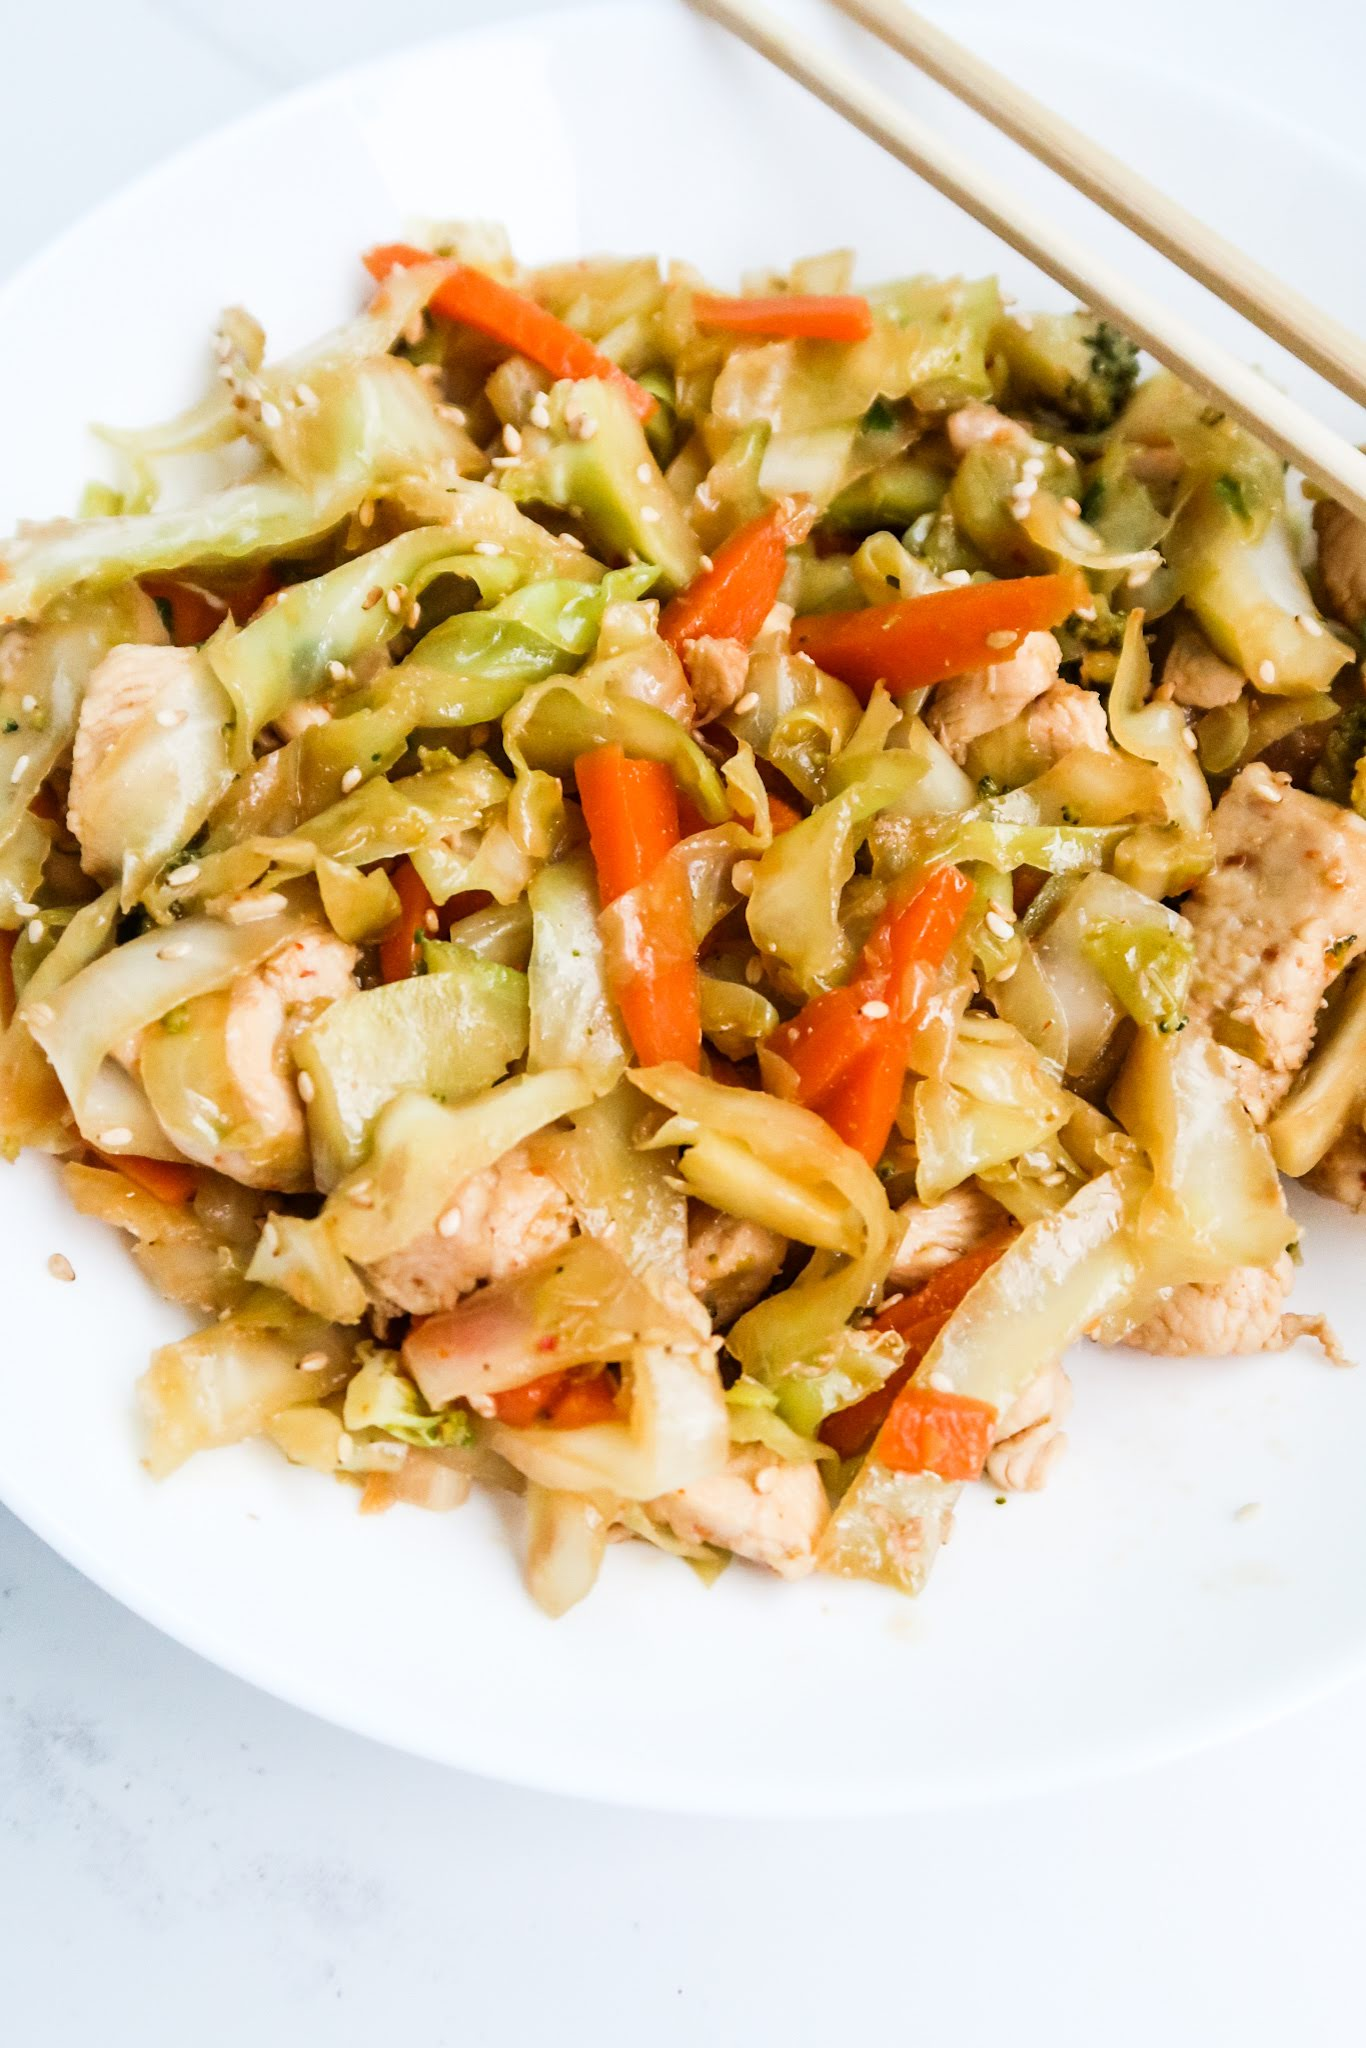 This 20-Minute egg roll in a bowl with chicken is an easy and healthy dinner recipe that is low carb, gluten-free, dairy-free, rich in fiber and comes with an easy paleo option! This chicken recipe has lately become one of my go-to quick and healthy weeknight dinners!